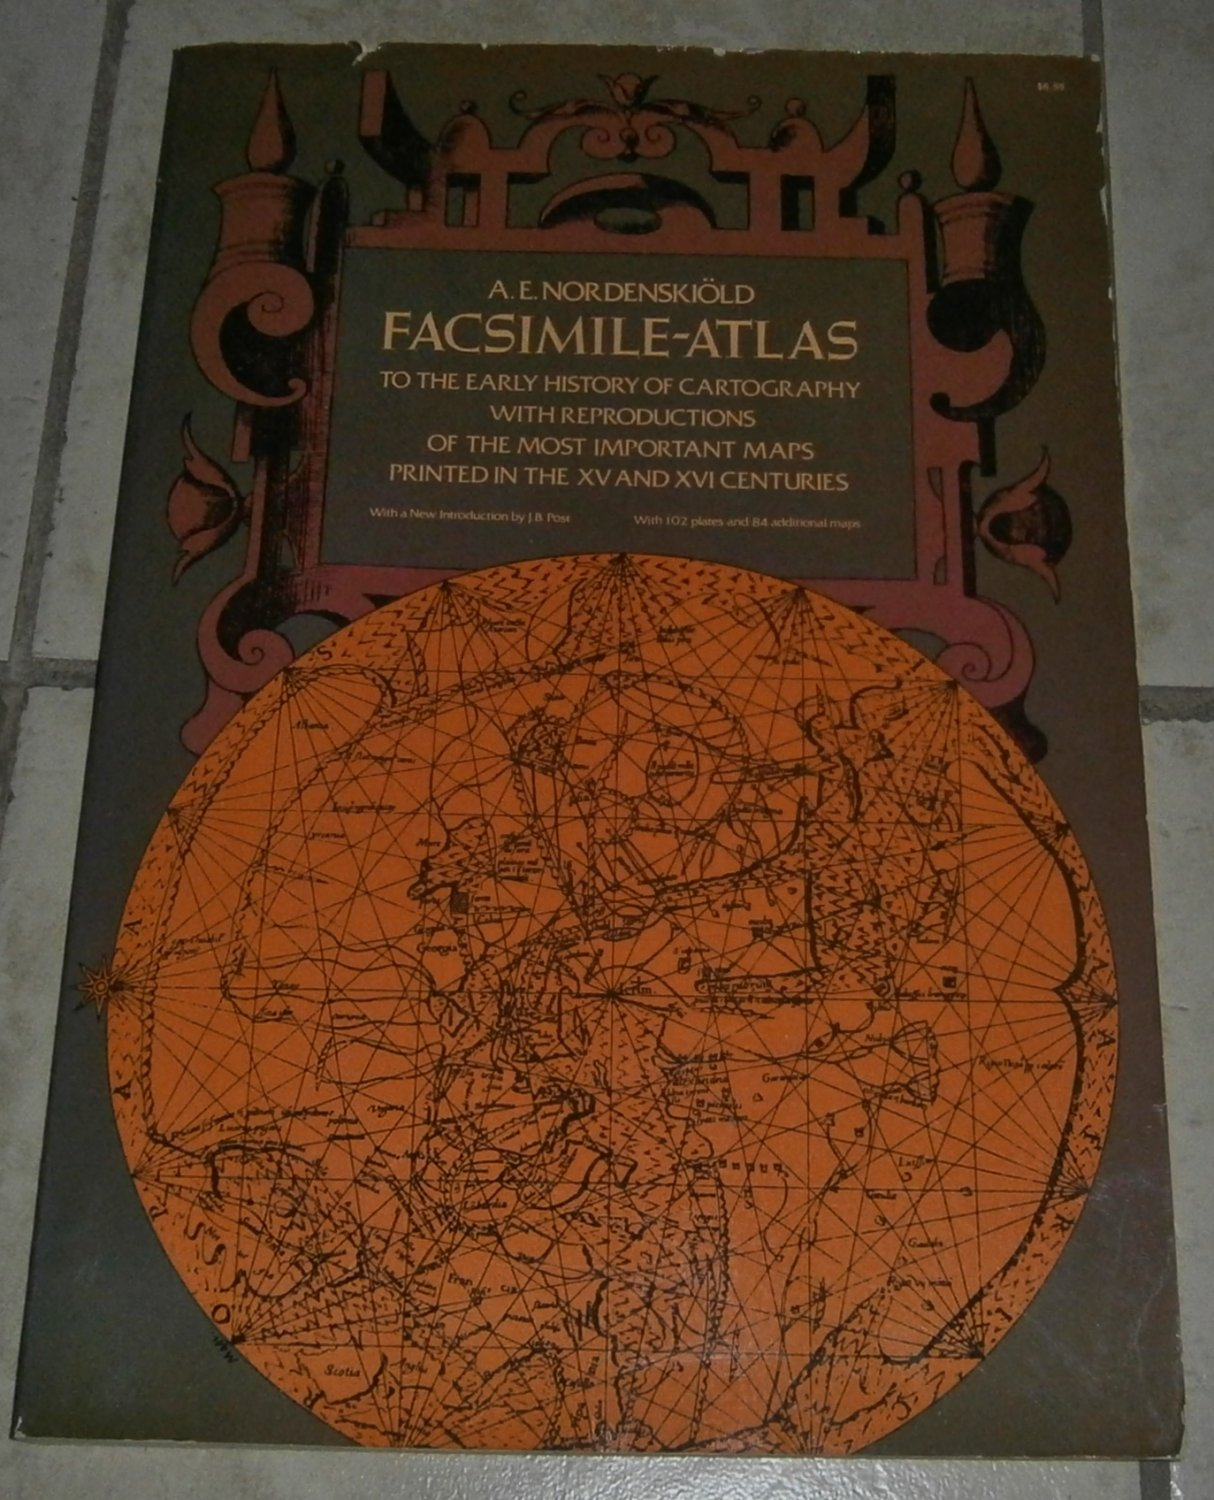 Facsimile-Atlas Early History Cartography Reproductions Most Important Maps Printed XV XVI Centuries